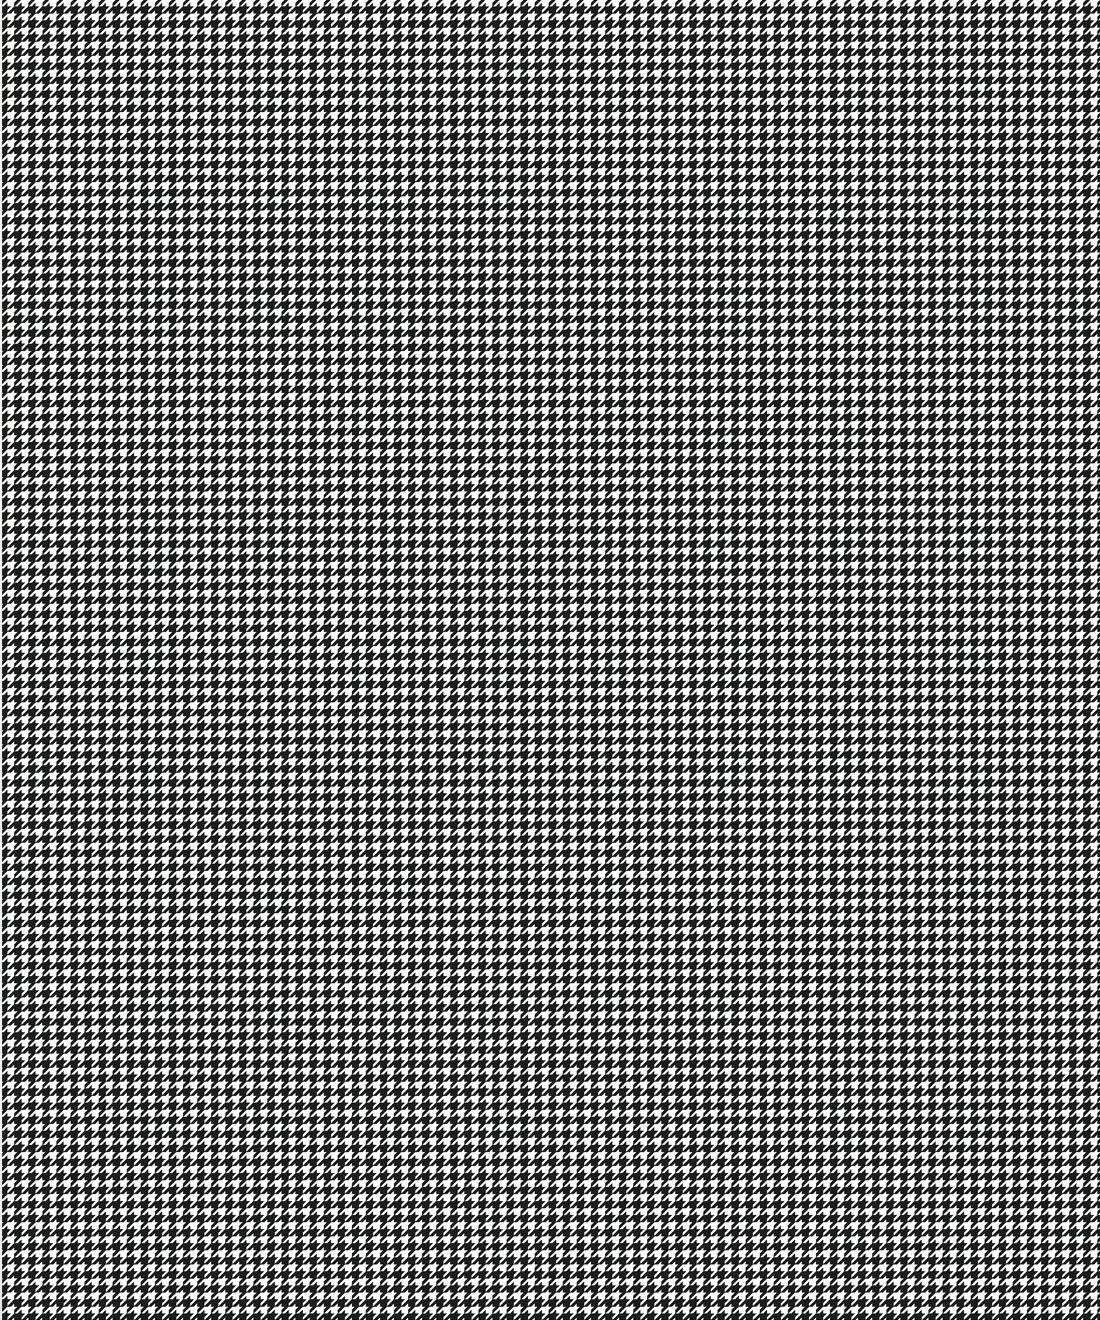 Hounds Tooth Wallpaper